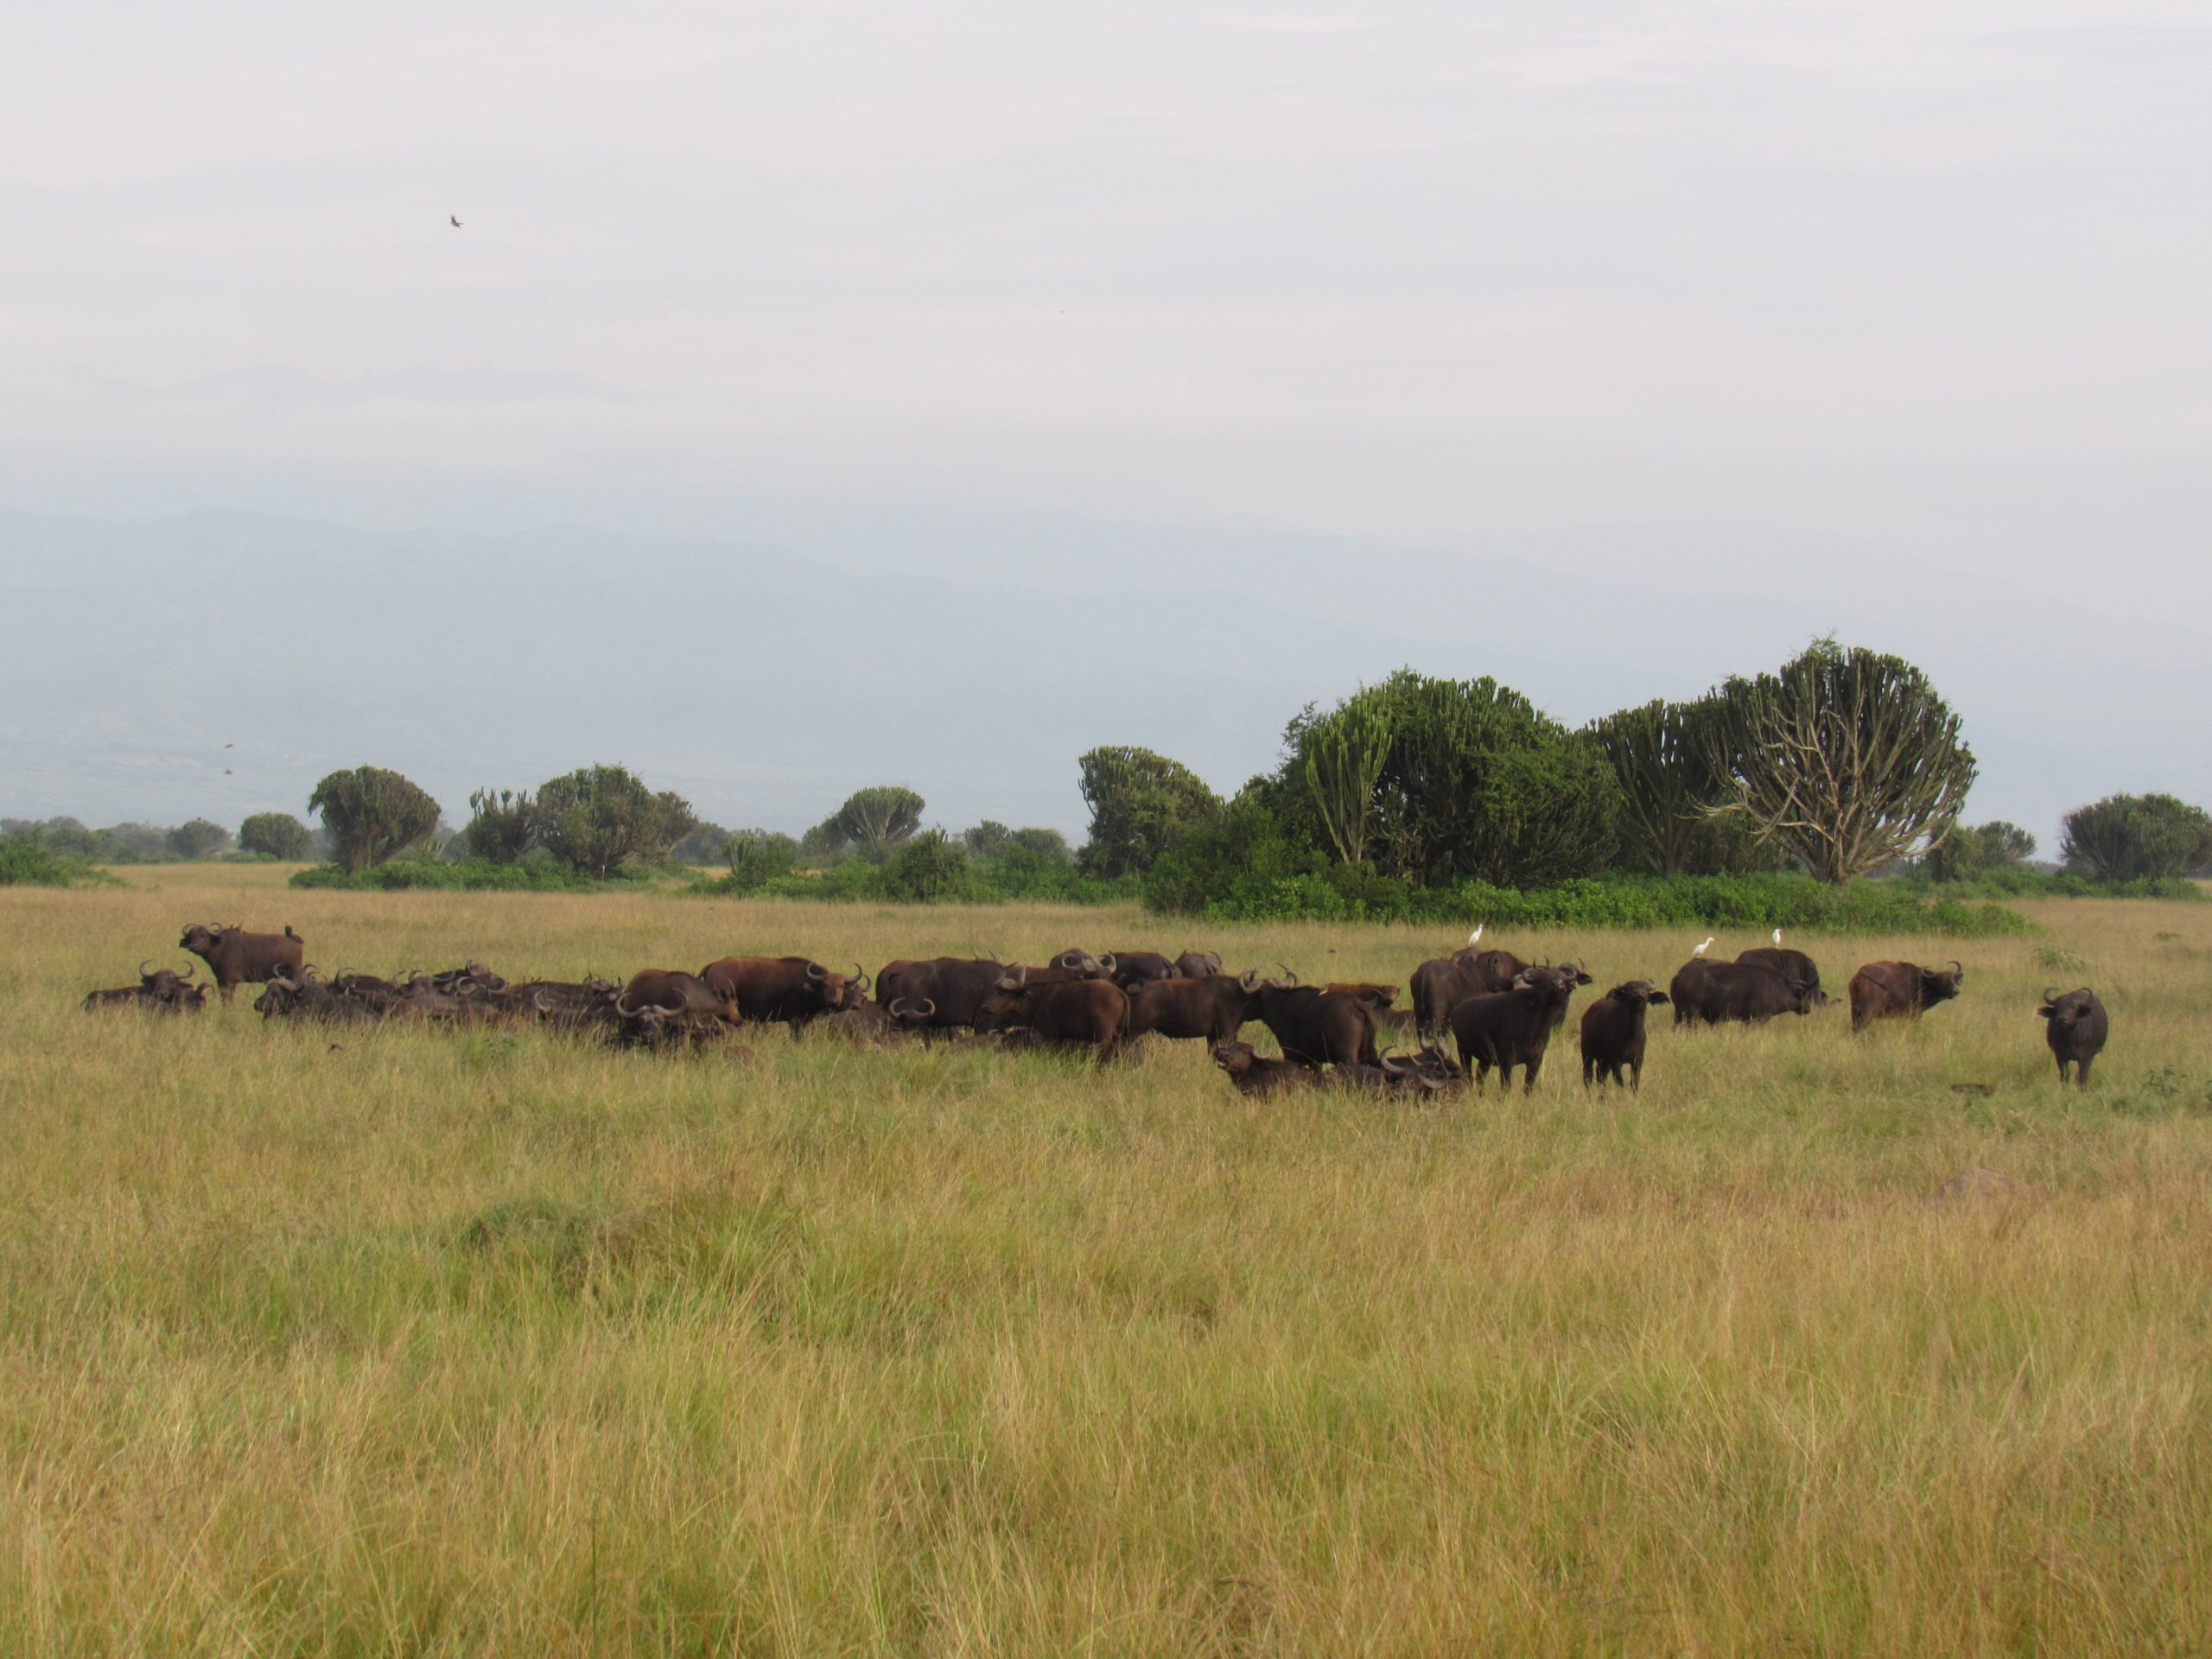 A herd of Buffaloes seen during a game drive